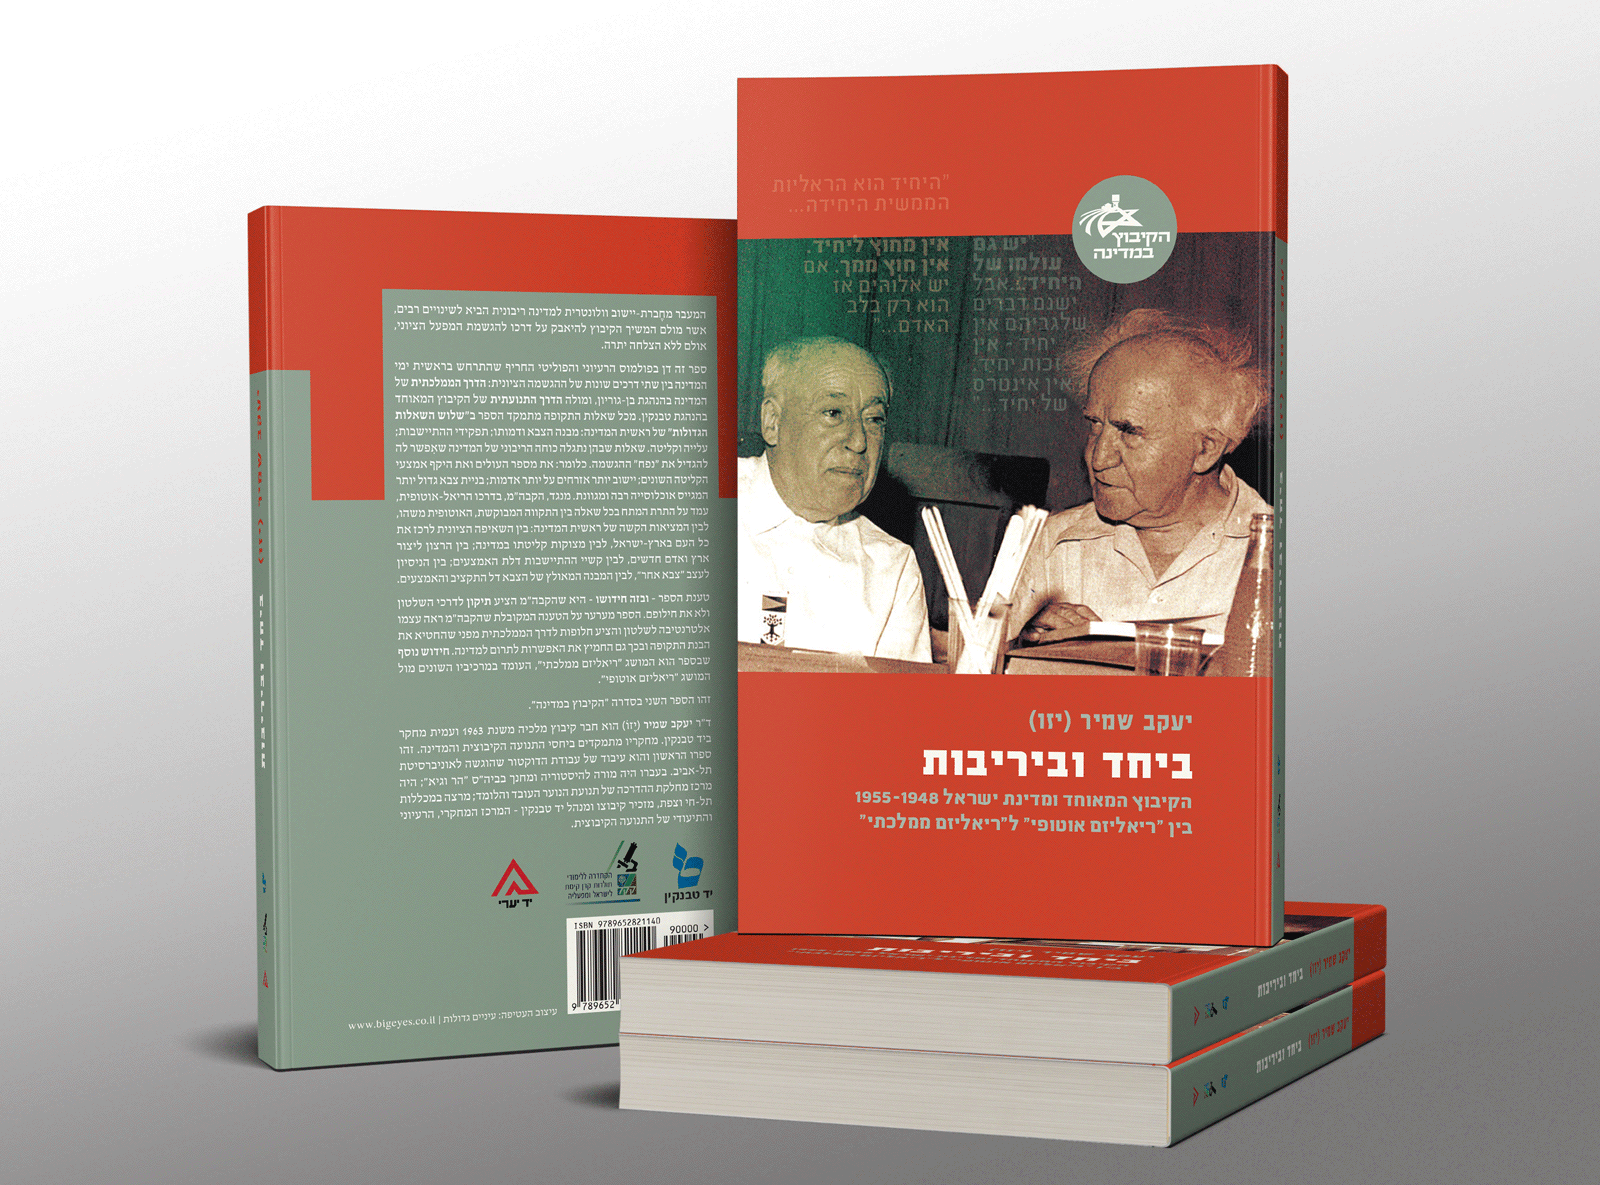 https://bigeyes.co.il/wp-content/uploads/2019/08/kibbutz-books-2.png